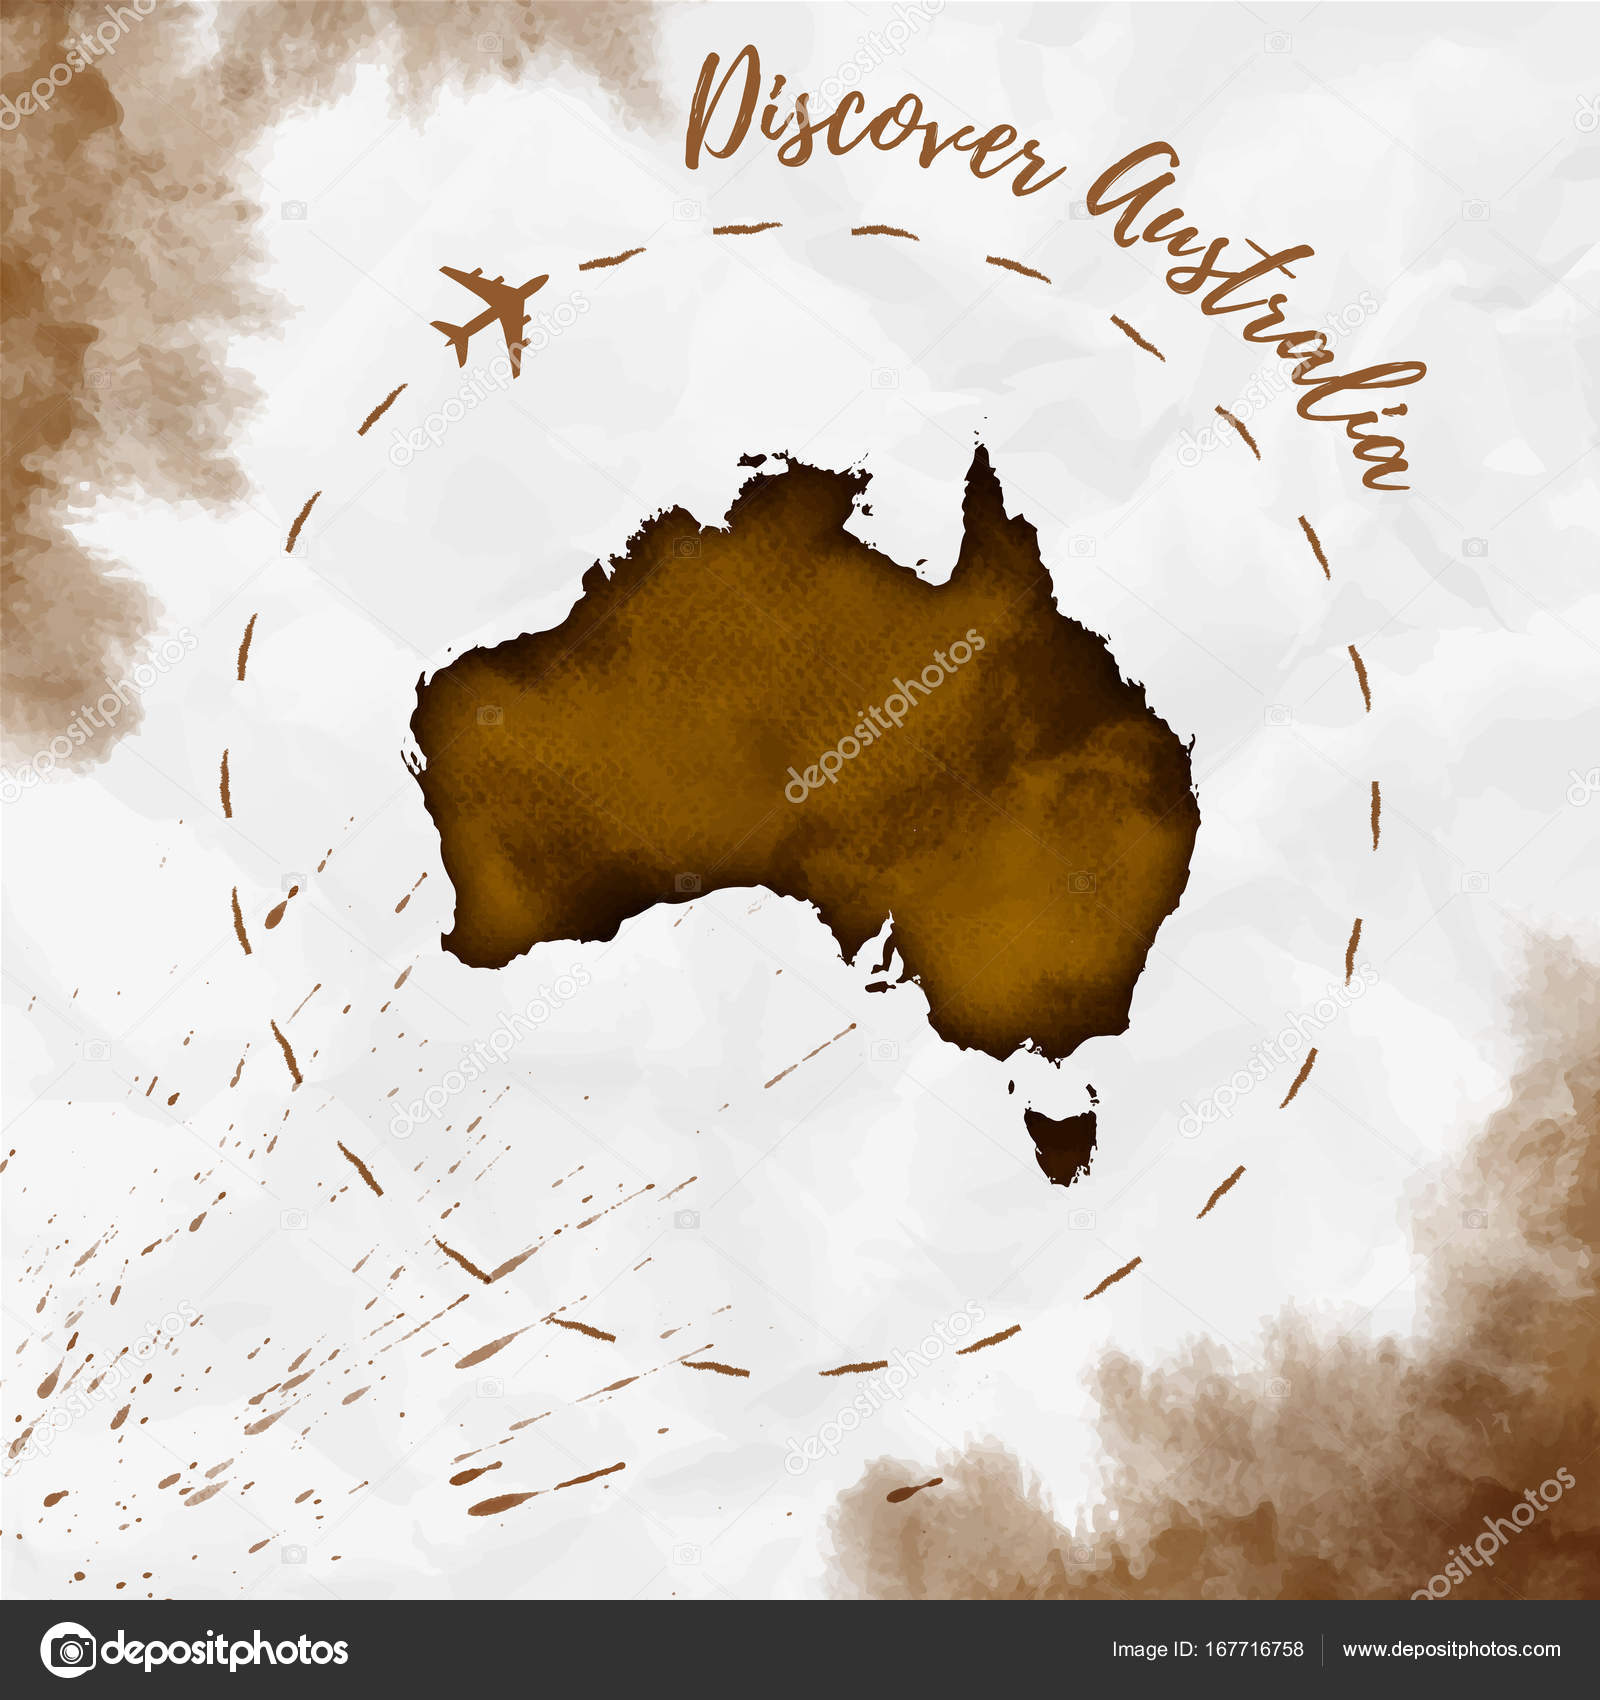 Australia watercolor map in sepia colors discover australia poster australia watercolor map in sepia colors discover australia poster with airplane trace and stock vector gumiabroncs Image collections